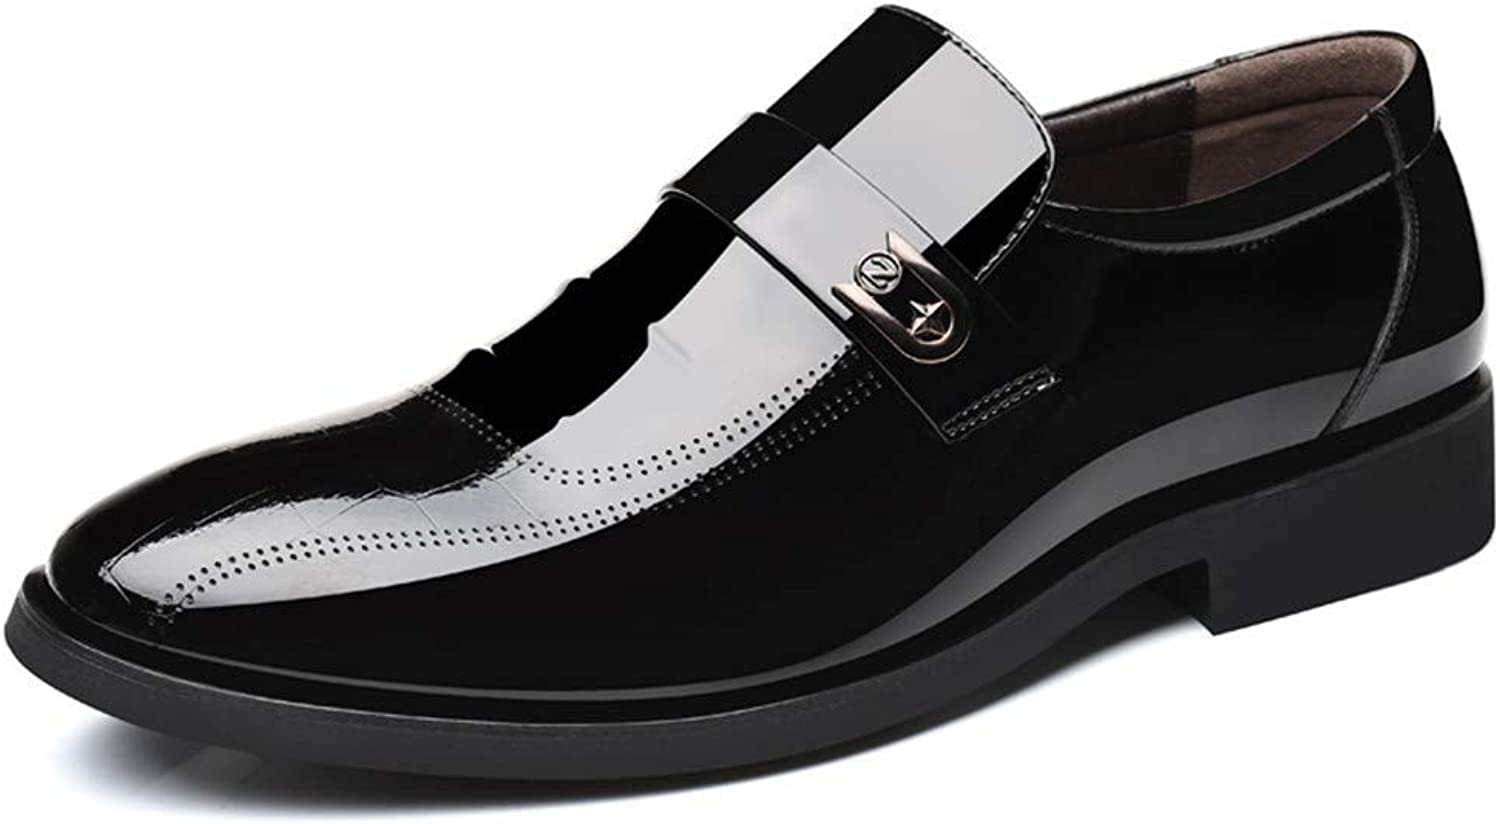 FuweiEncore 2018 Men Business Oxford Casual Lace-up Style And Foot Style Patent Leather Formal shoes (color  Lace Brown, Size  42 EU) (color   Black, Size   44 EU)